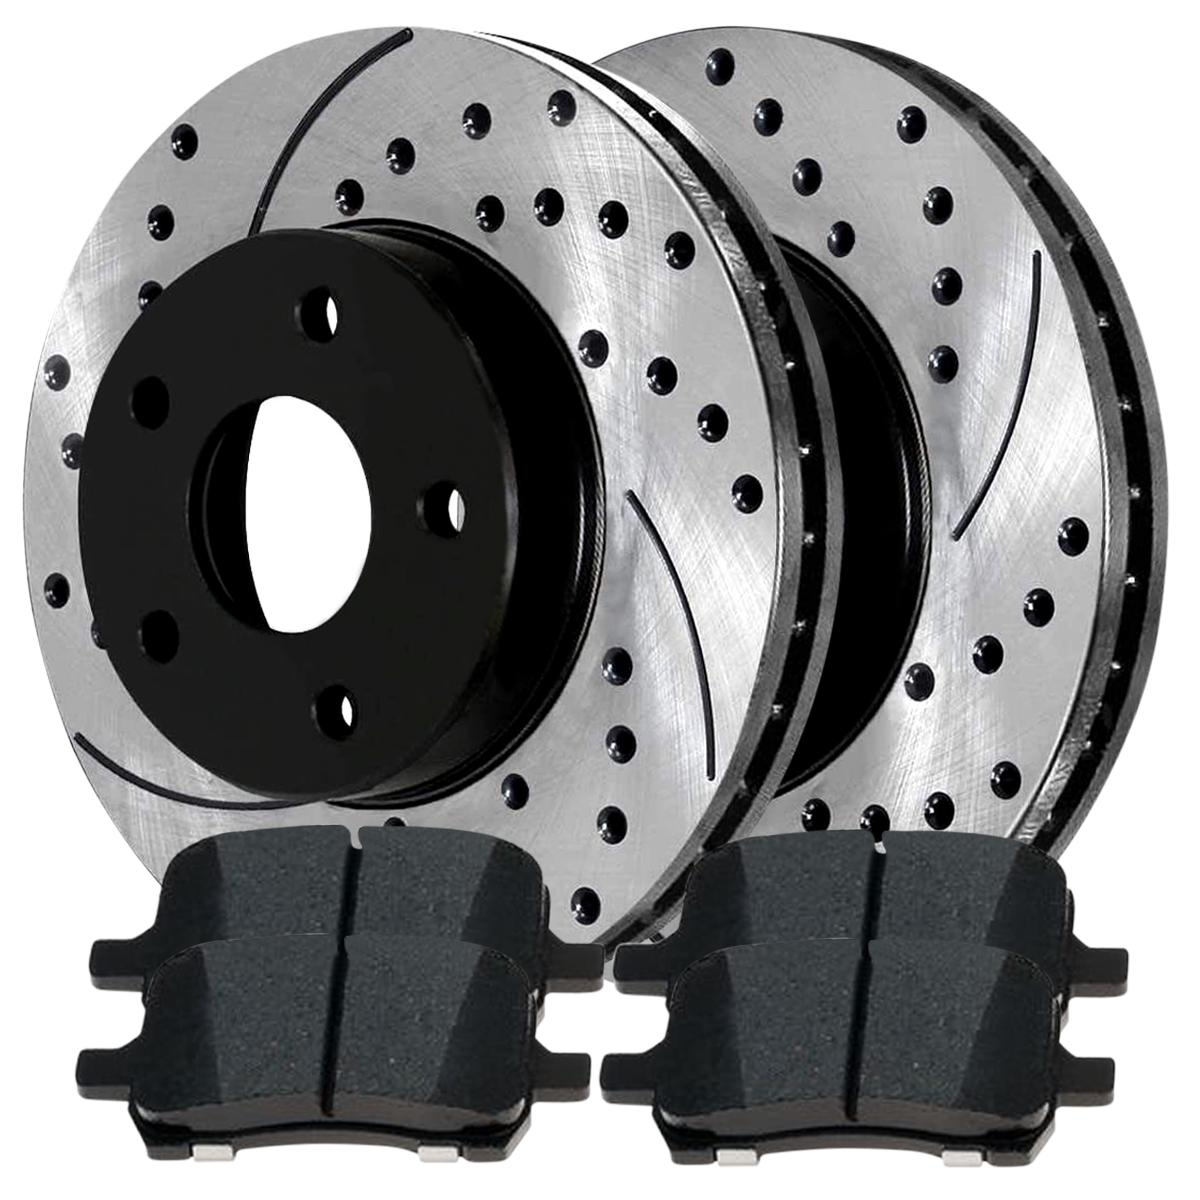 Performance Pad For 06-11 Chevrolet HHR Front 2 Drill Slotted Brake Rotors 4